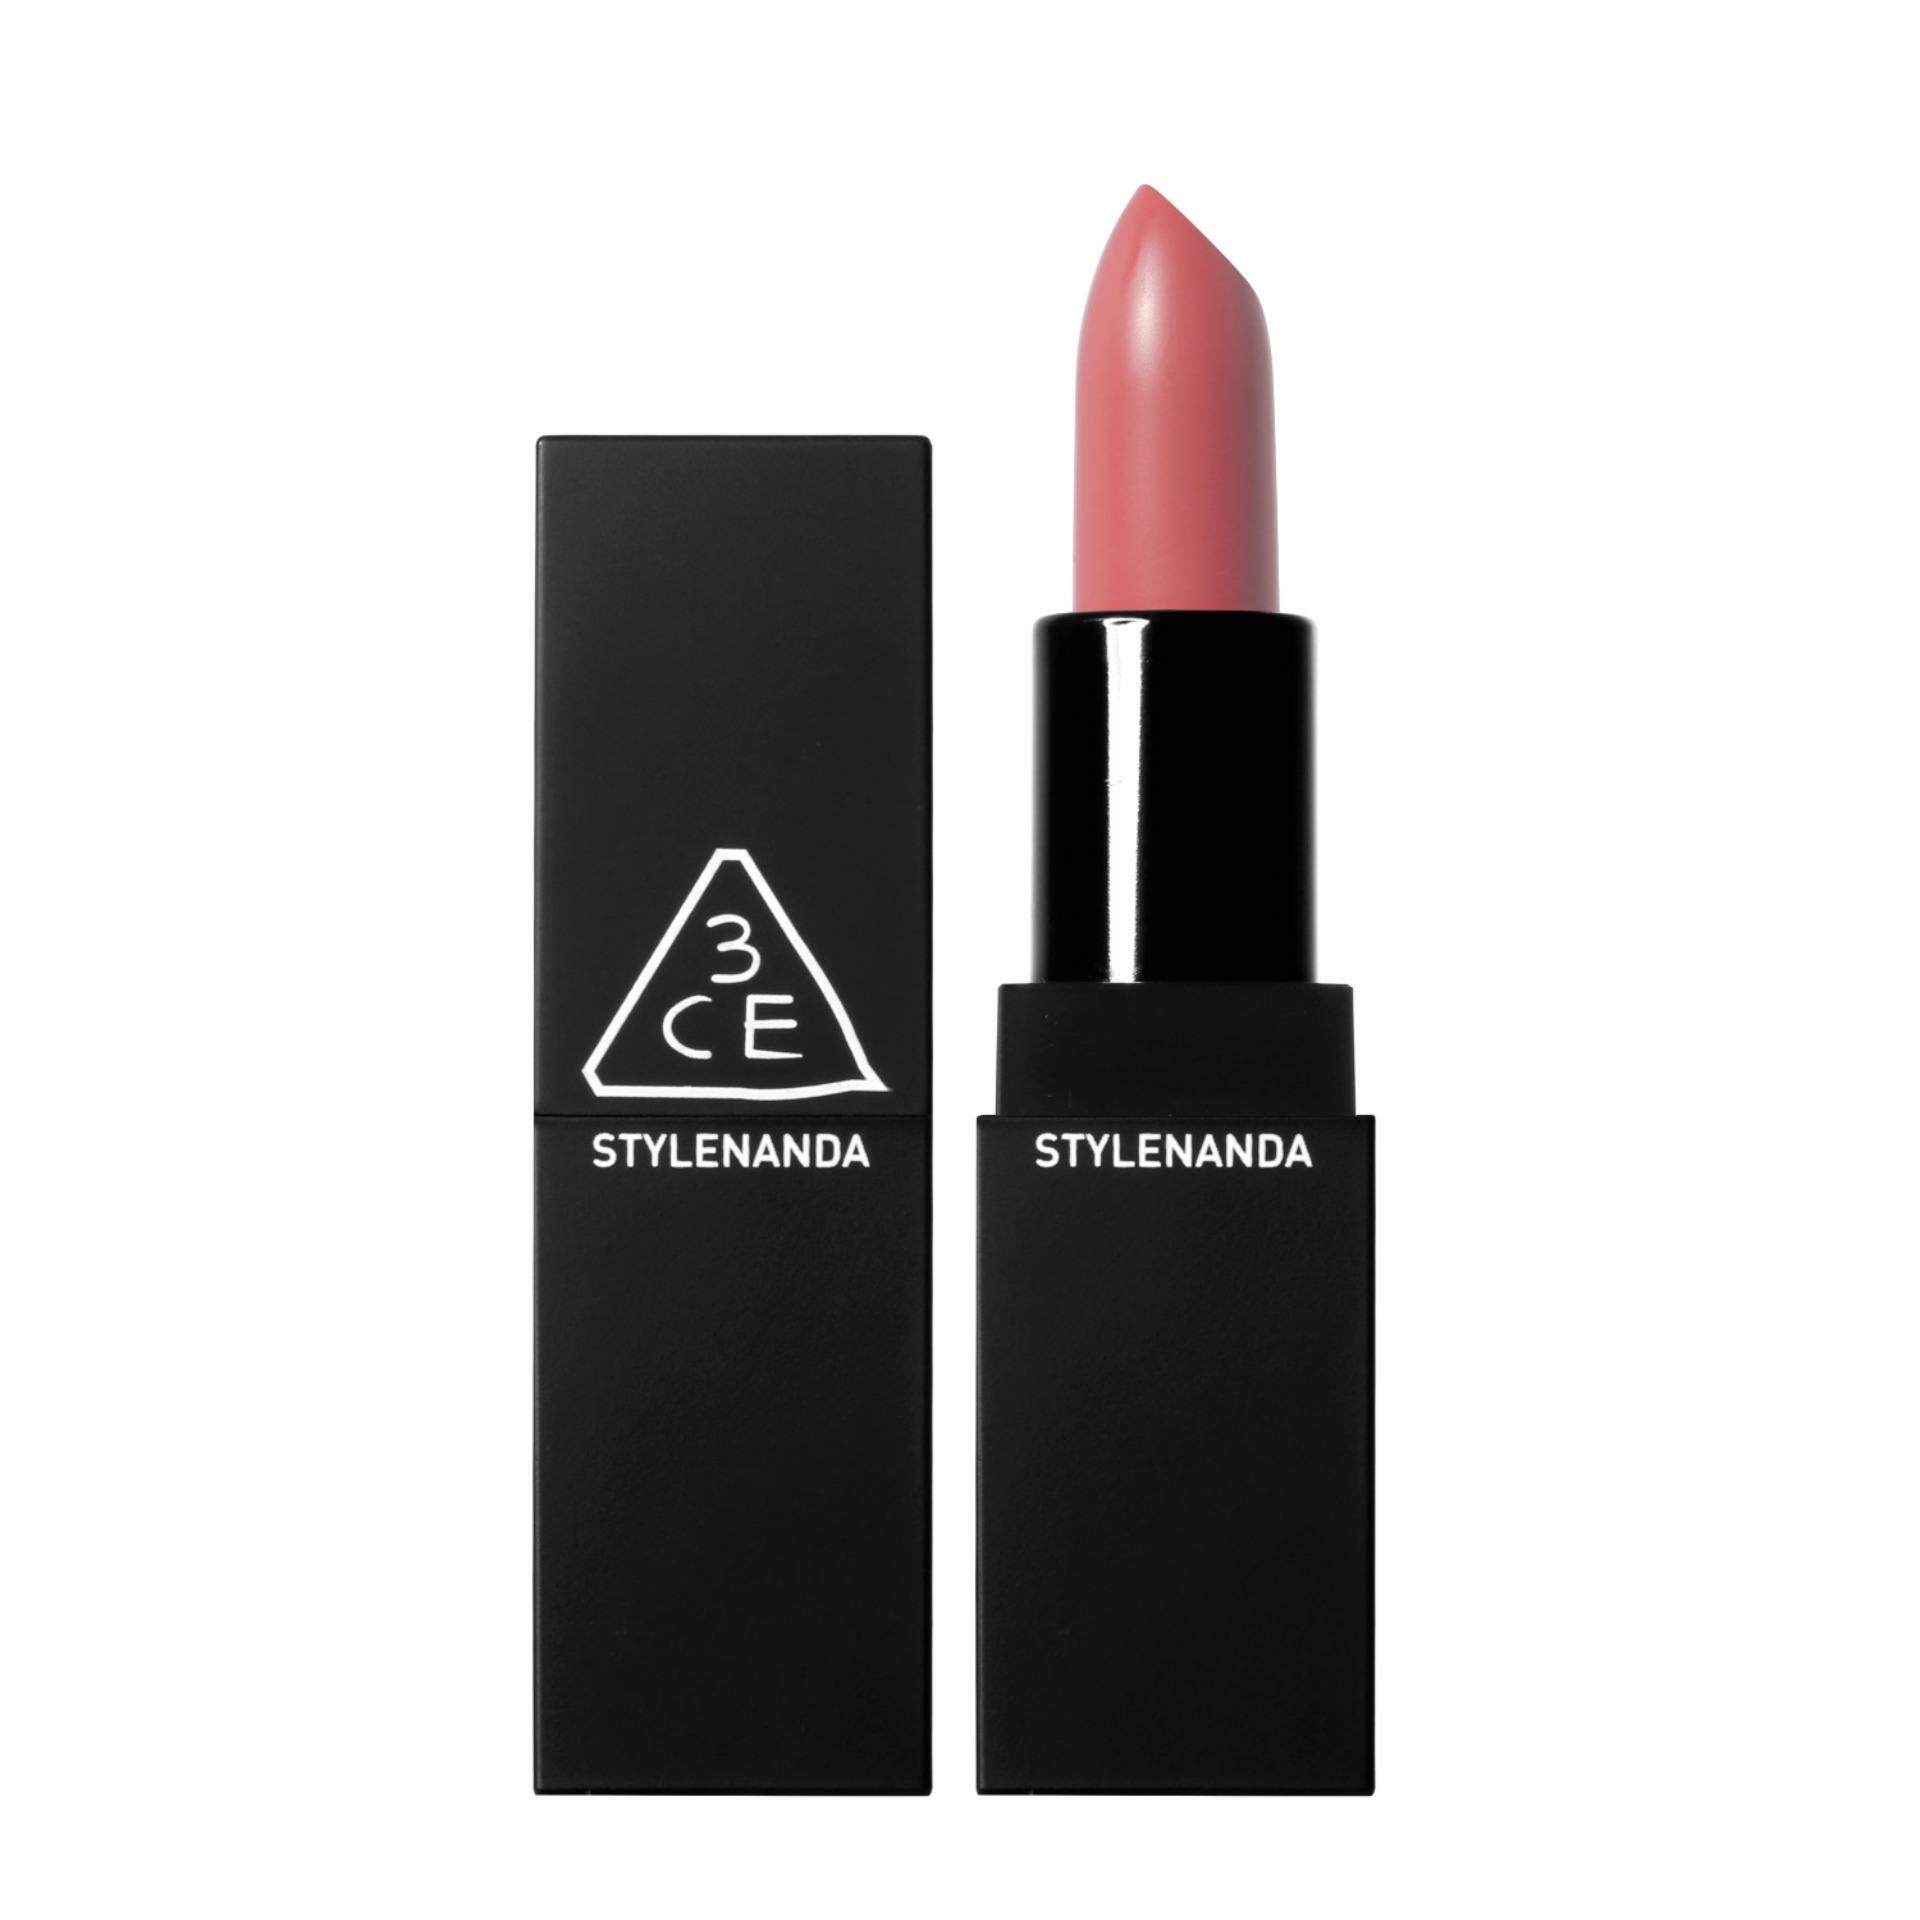 3CE MATTE LIP COLOR (NEWSPEAK)